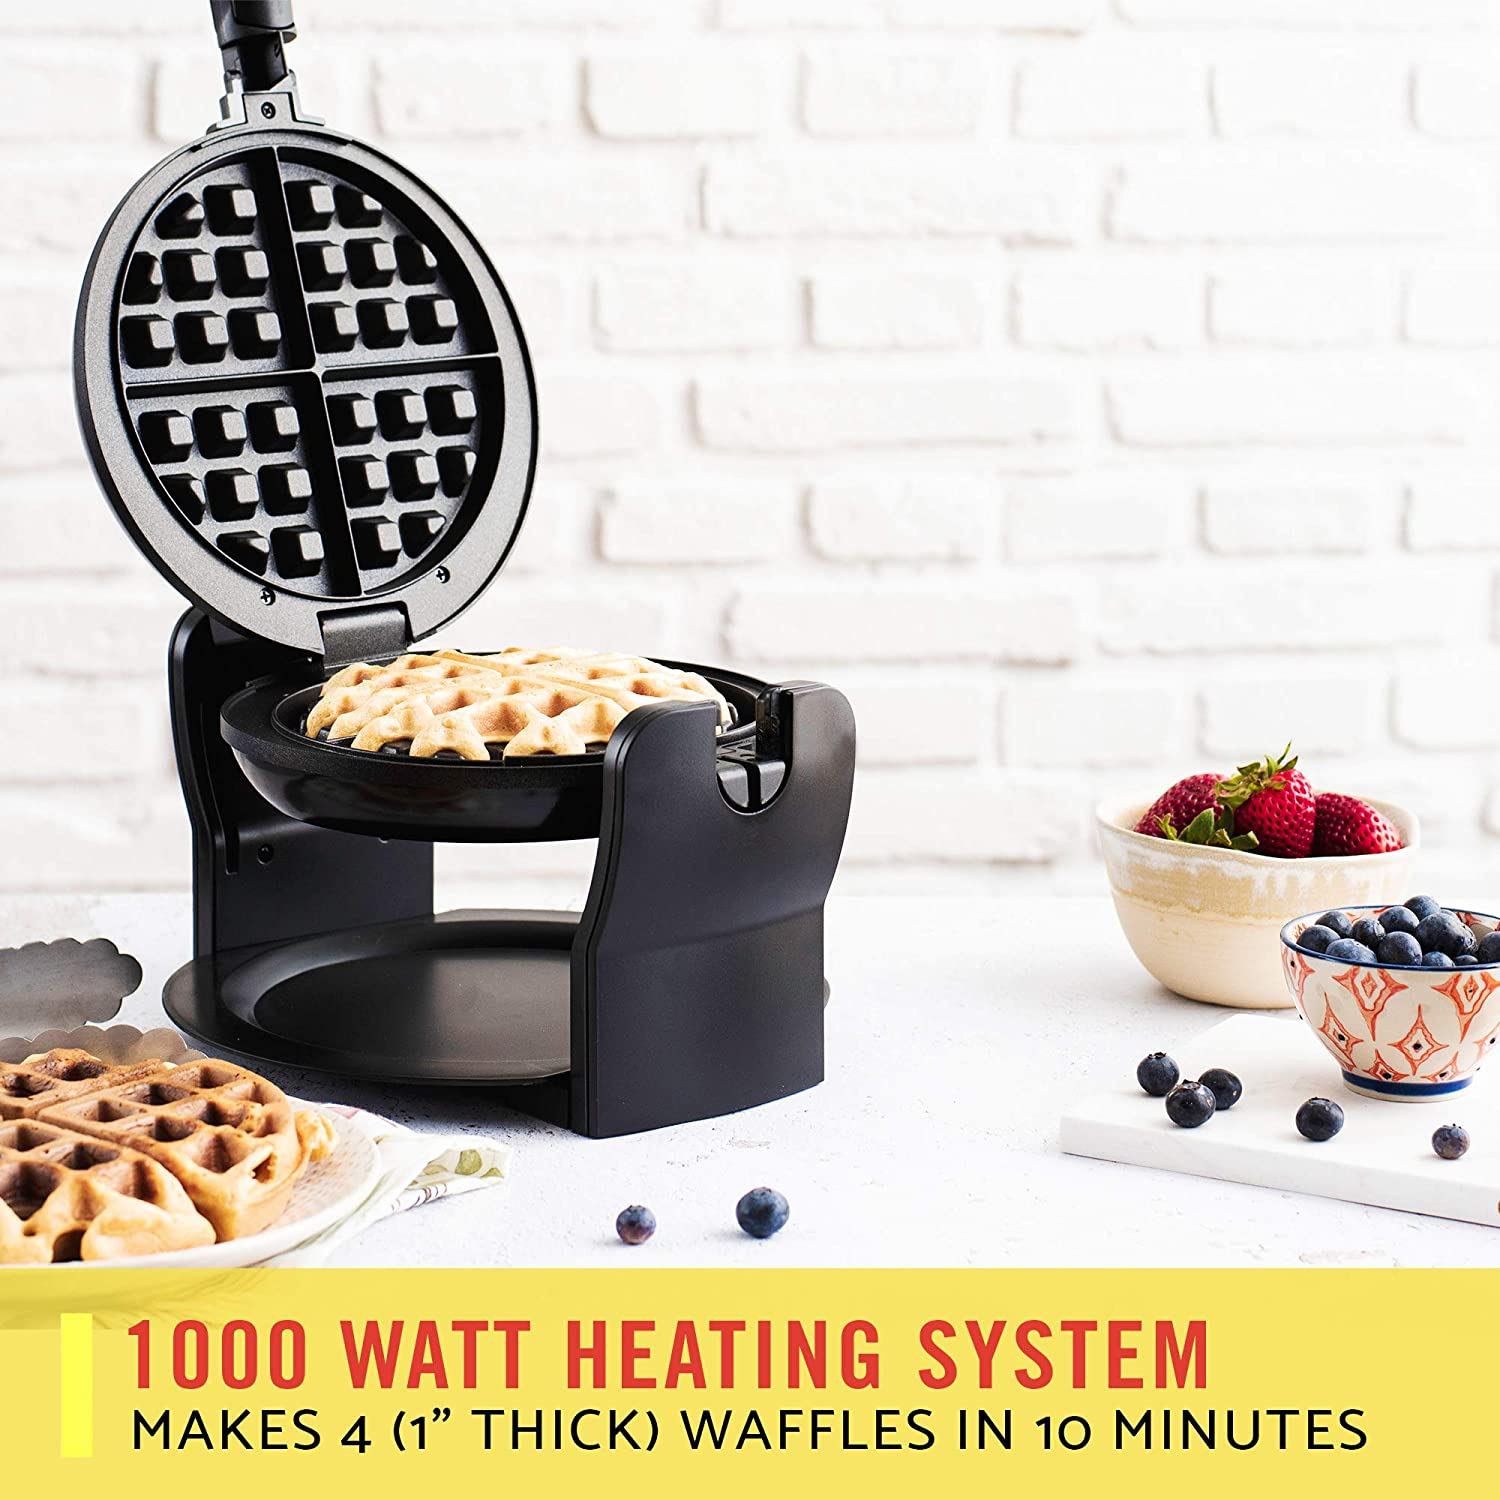 BELLA (13591) Classic Rotating Non-Stick Belgian Waffle Maker with Removeable Drip Tray, Black: Electric Waffle Irons: Kitchen & Dining